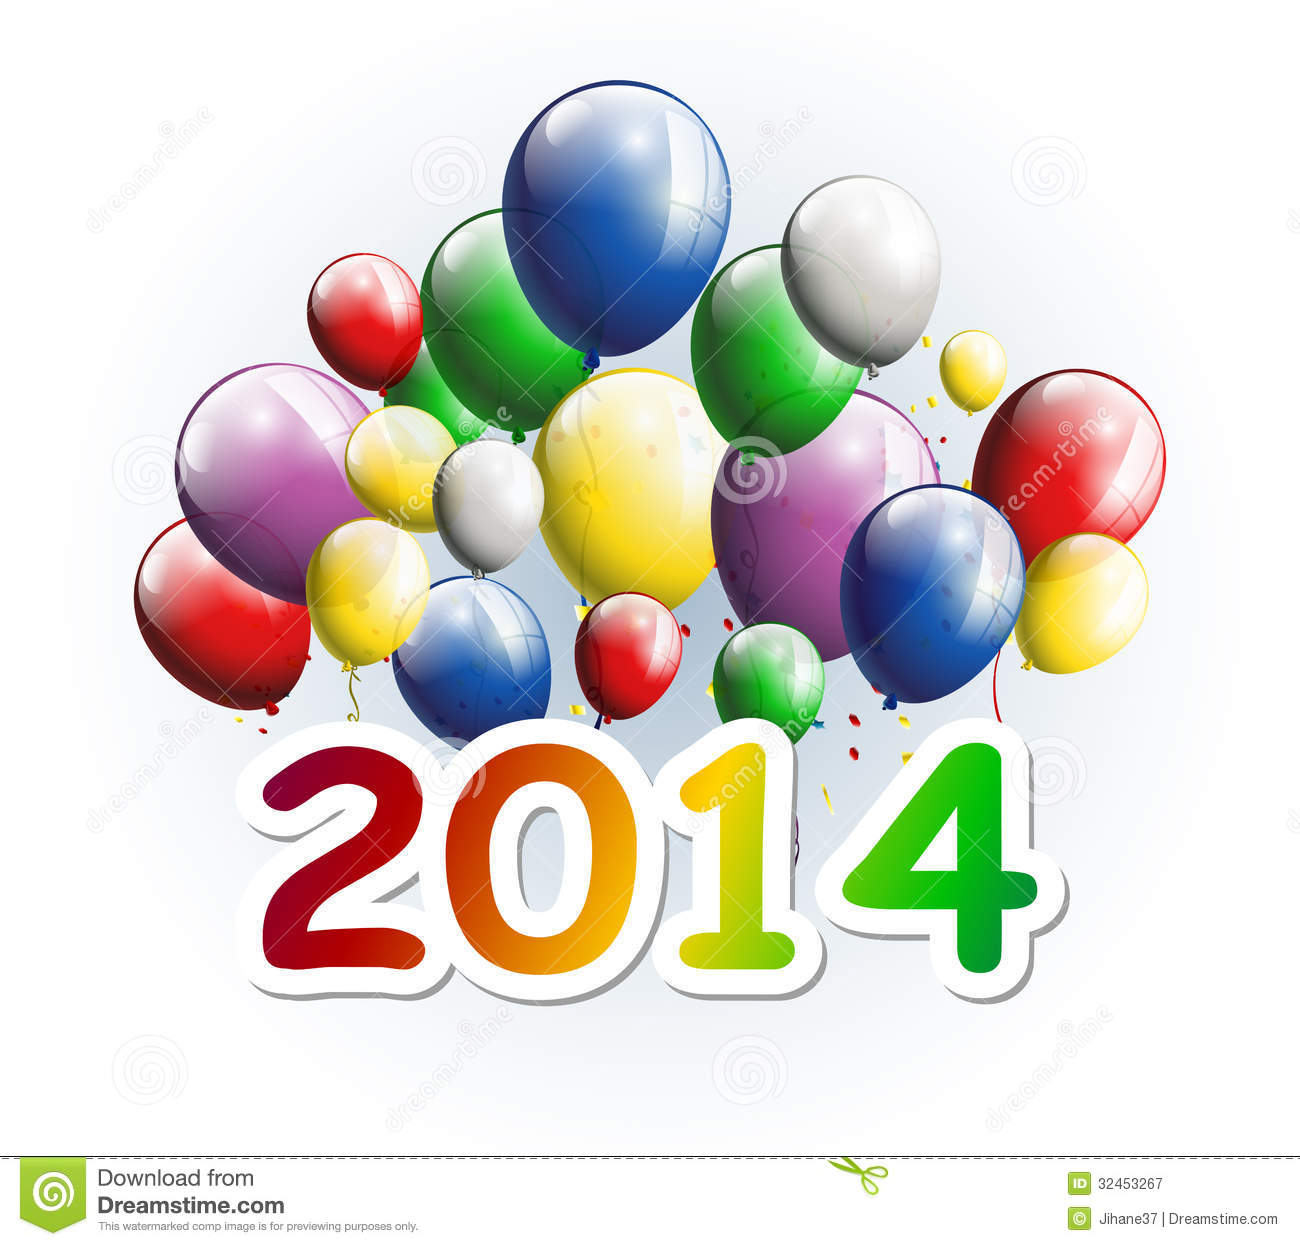 Illustration Of Happy New Year 2014 Greeting Card With Party Balloons